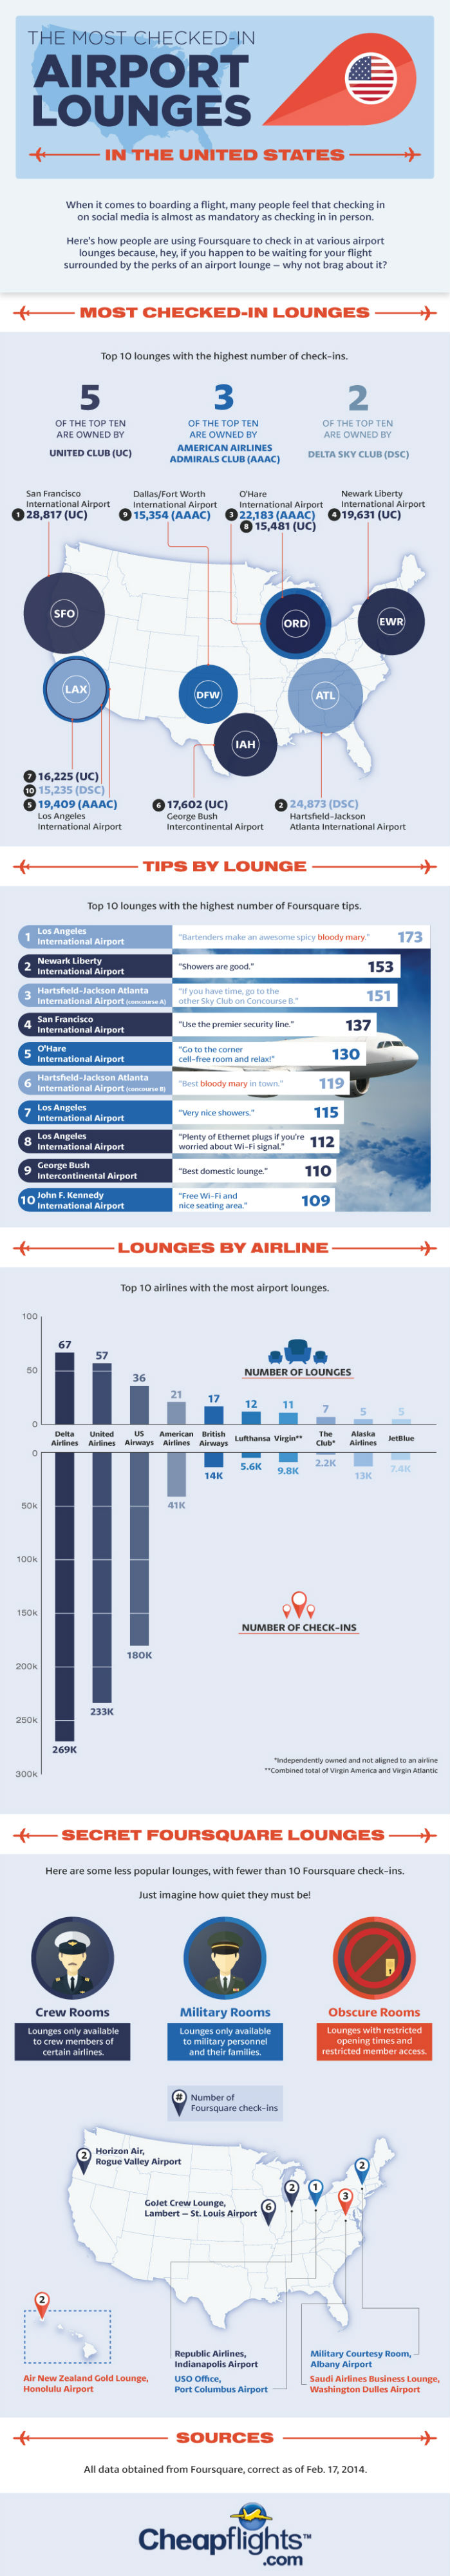 Most Checked-in Airport Lounges [Infographics]